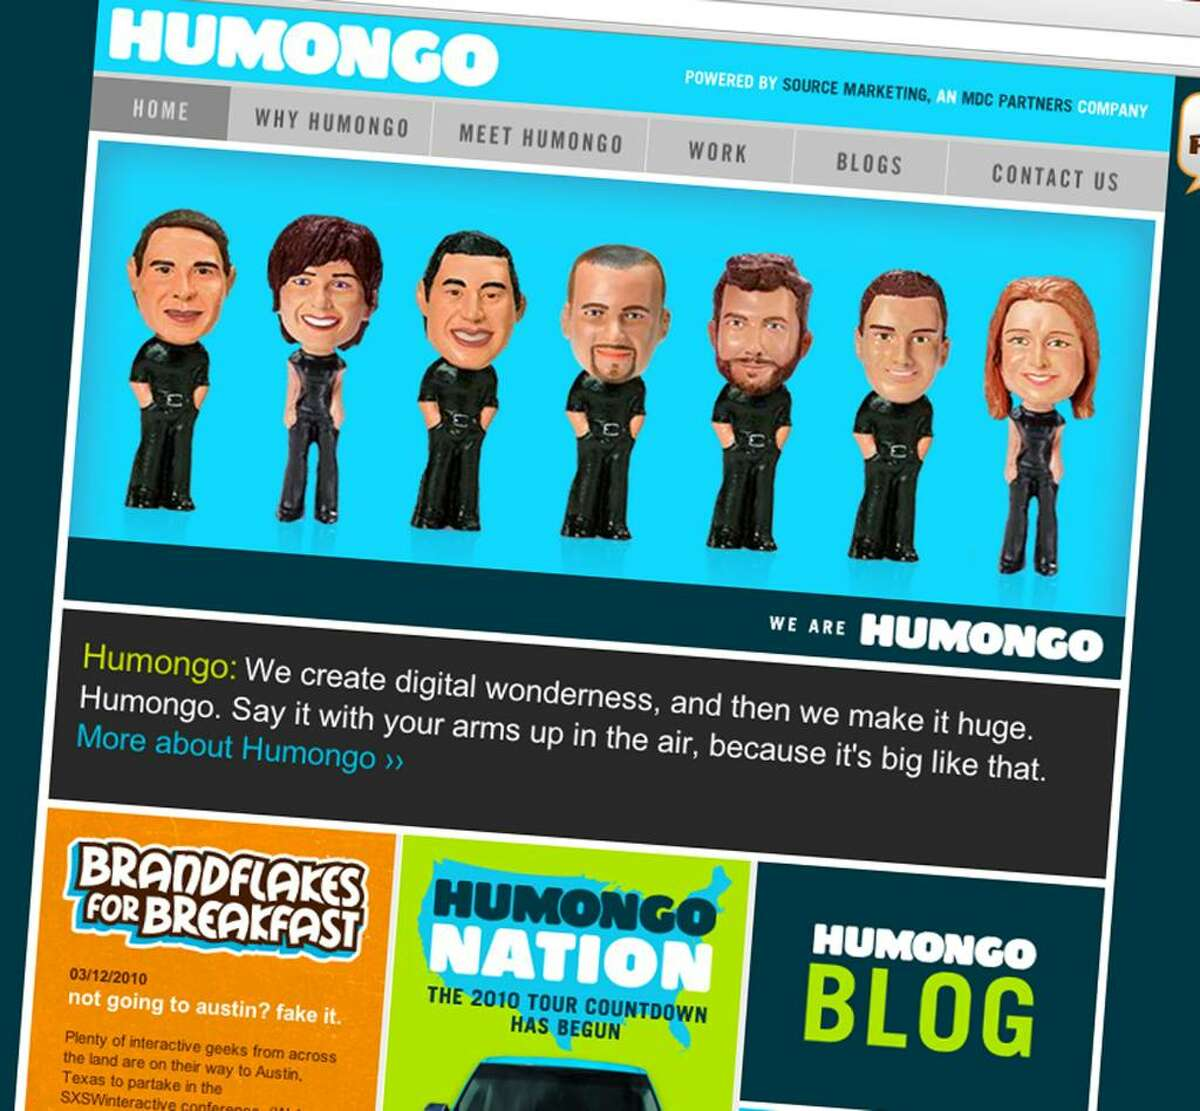 Source Marketing, a Norwalk-based marketing shop, acquired a smaller agency called Plaid, now renamed Humongo.